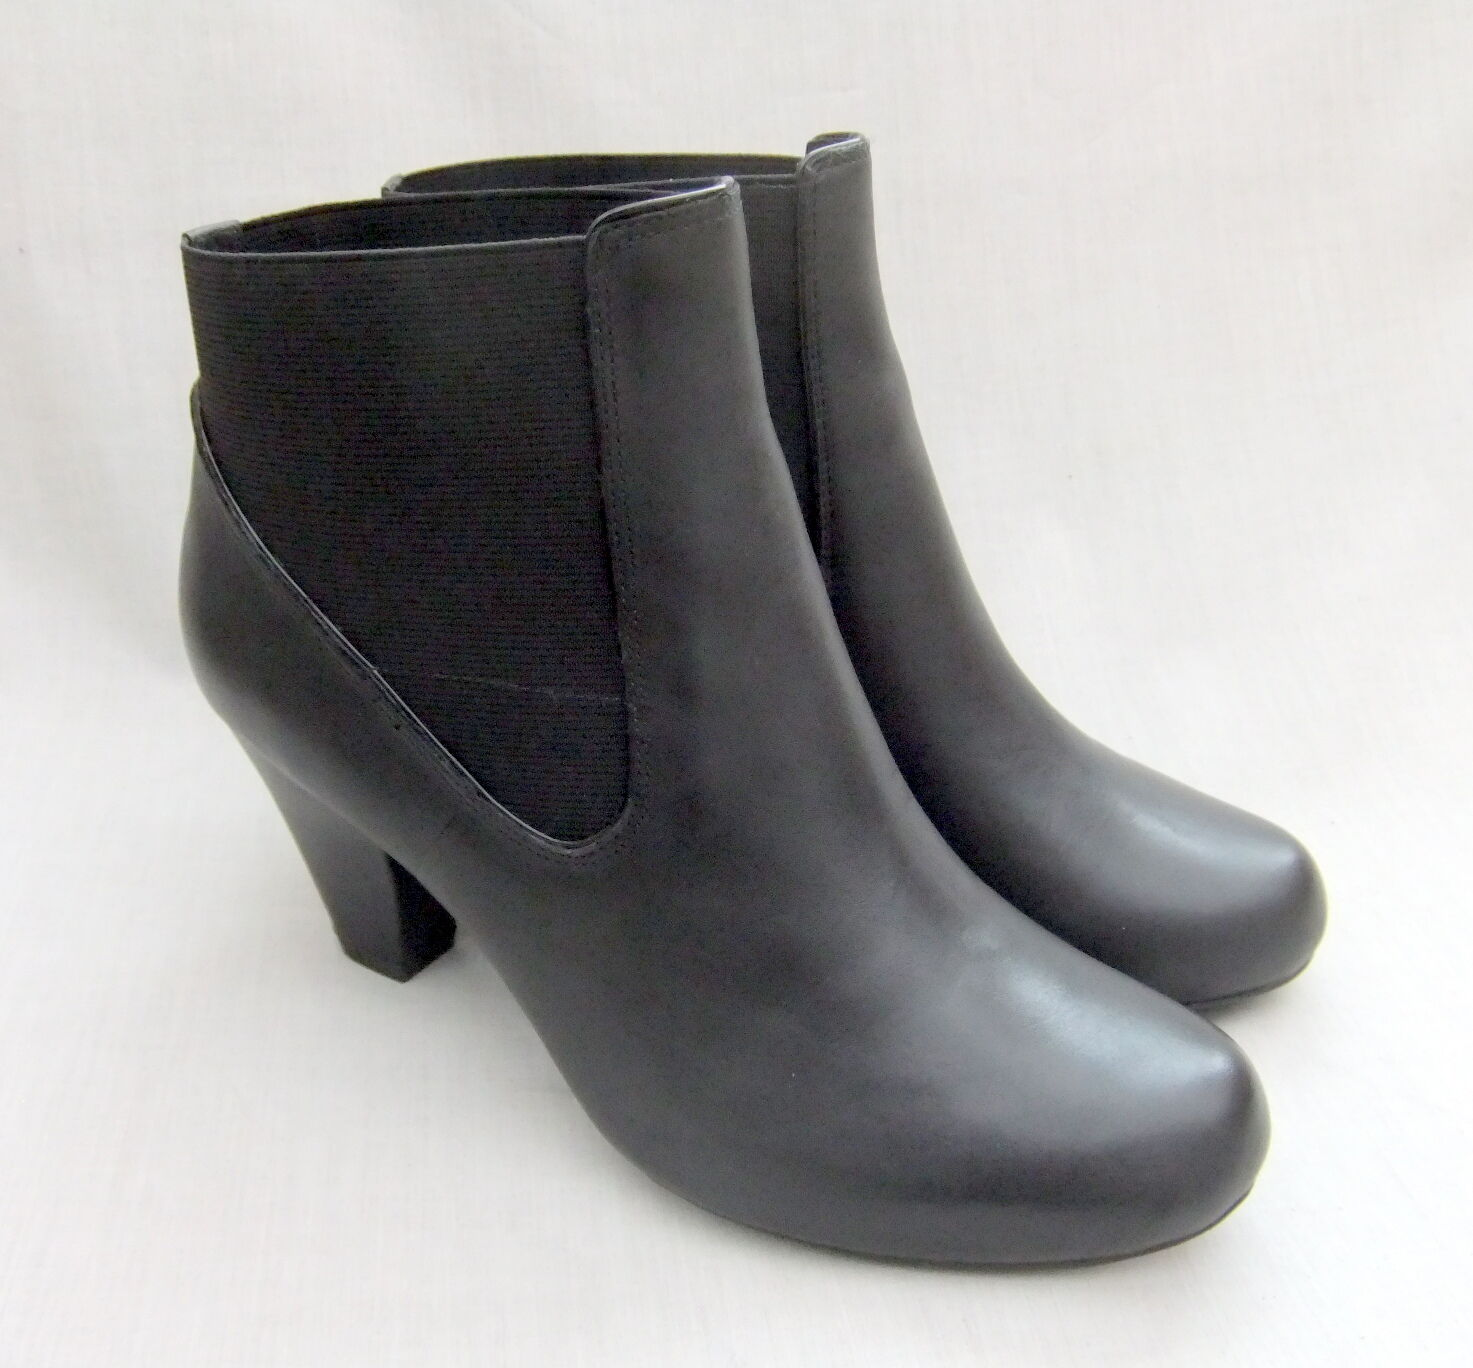 NEU CLARKS COOLEST BABE Damenschuhe BLACK LEATHER ANKLE BOOTS